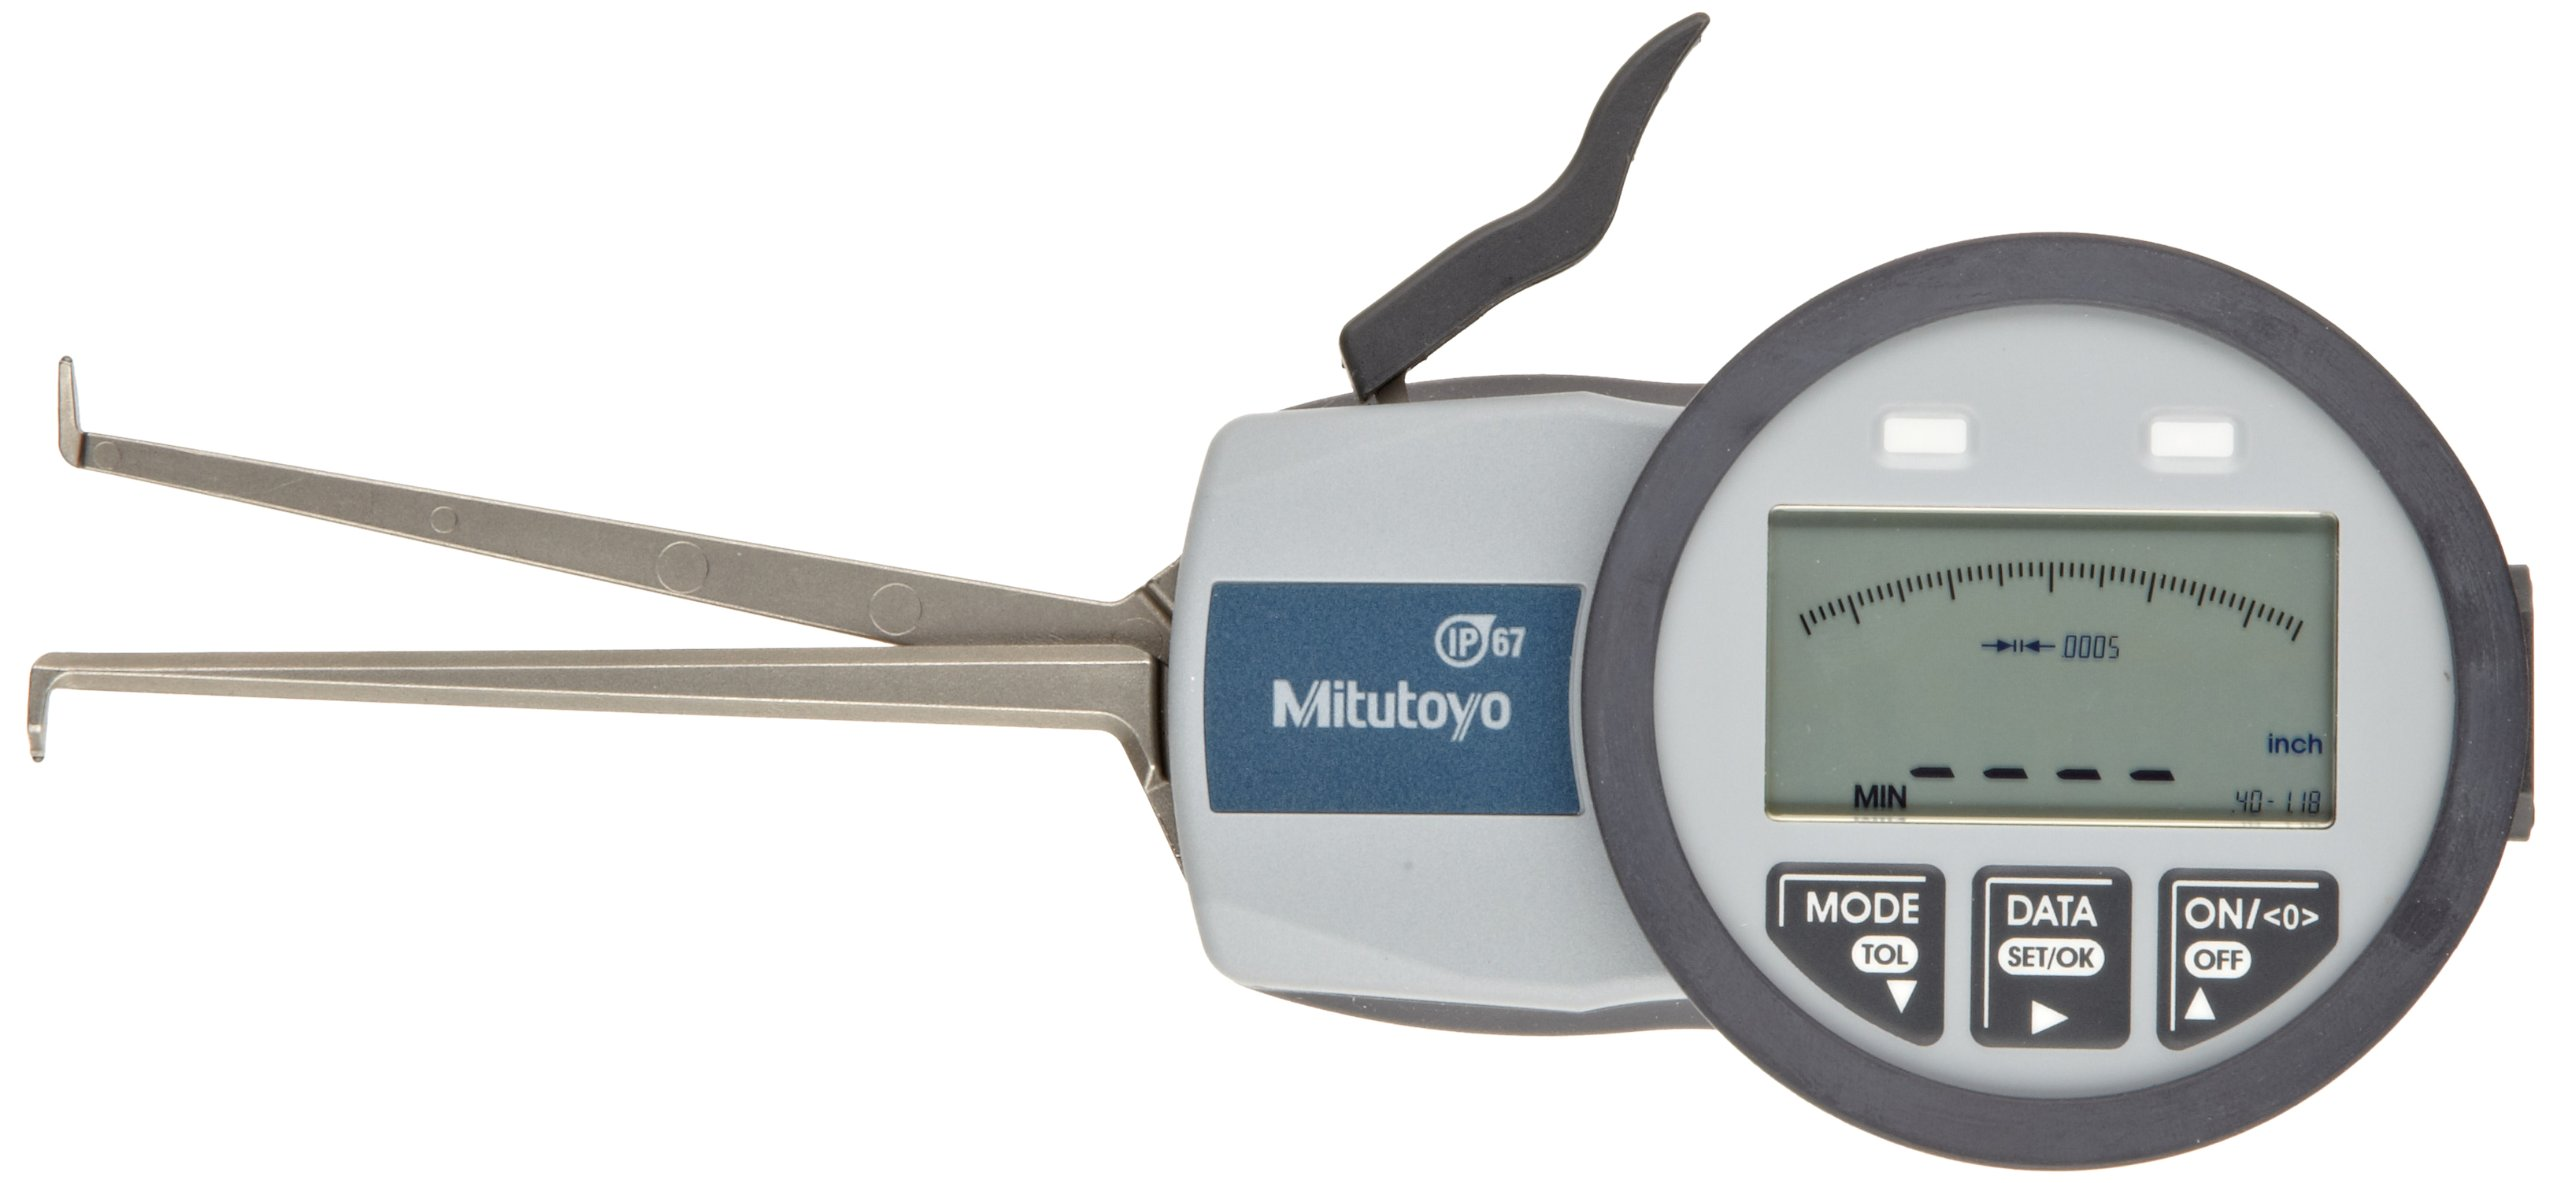 Mitutoyo 209-552 Caliper Gauge, Inch/Metric, Pointed Jaw, 0.39-1.18'' Range, +/-0.0015'' Accuracy, 0.0005'' Resolution, Meets IP63/IP67 Specifications